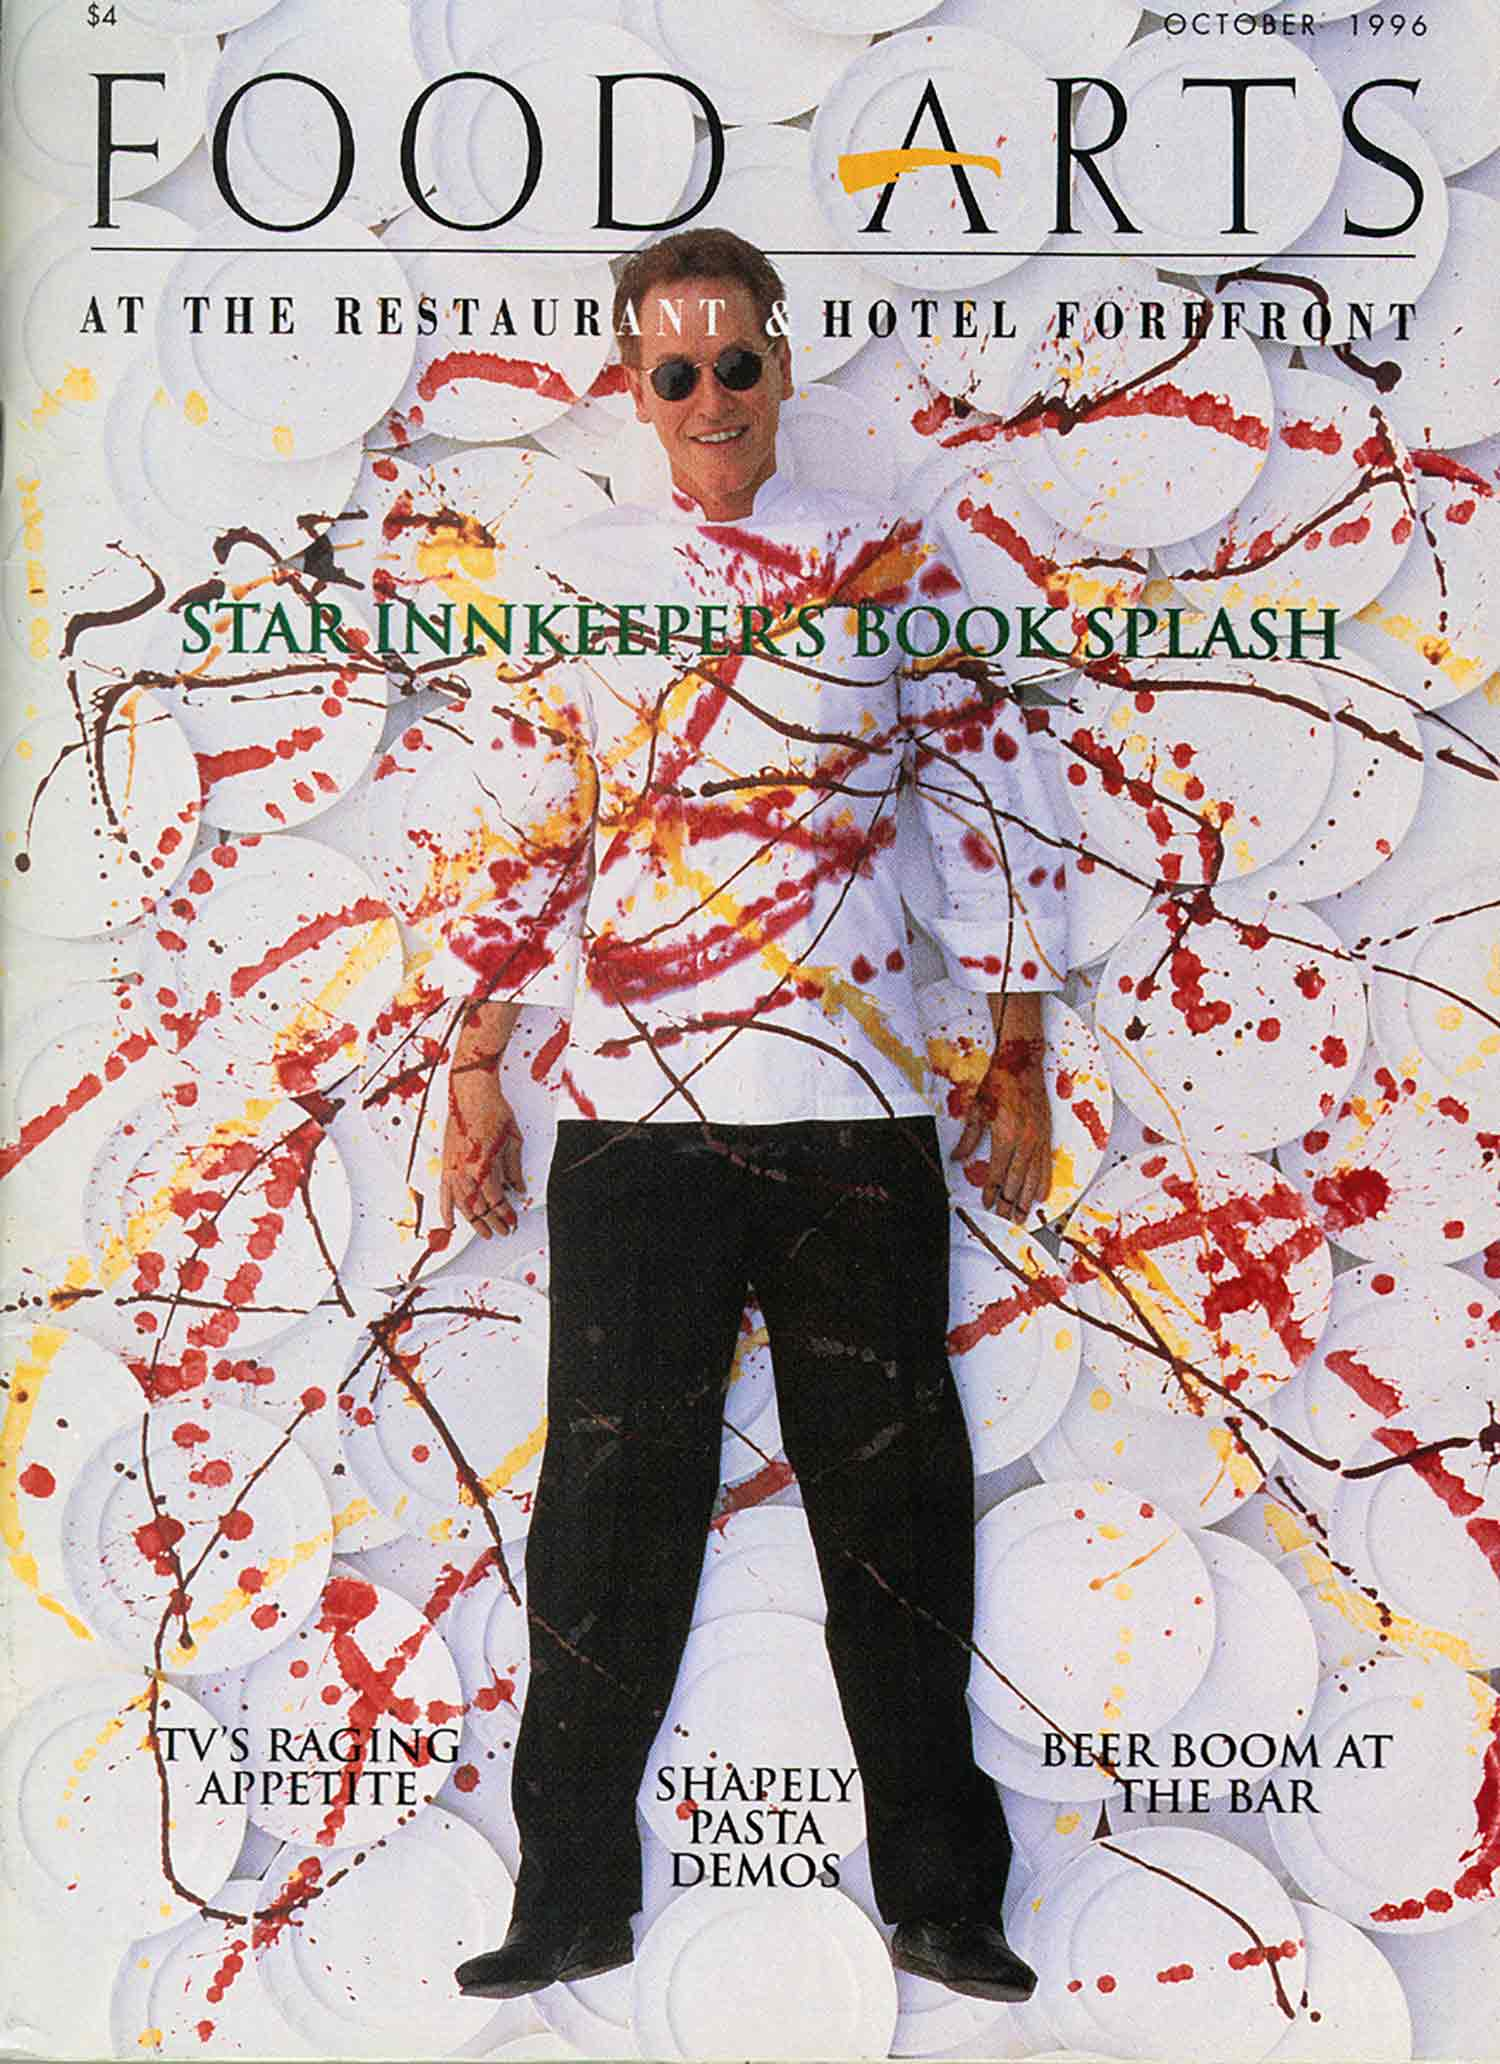 Patrick O'Connell on the cover of a magazine in the 90's.